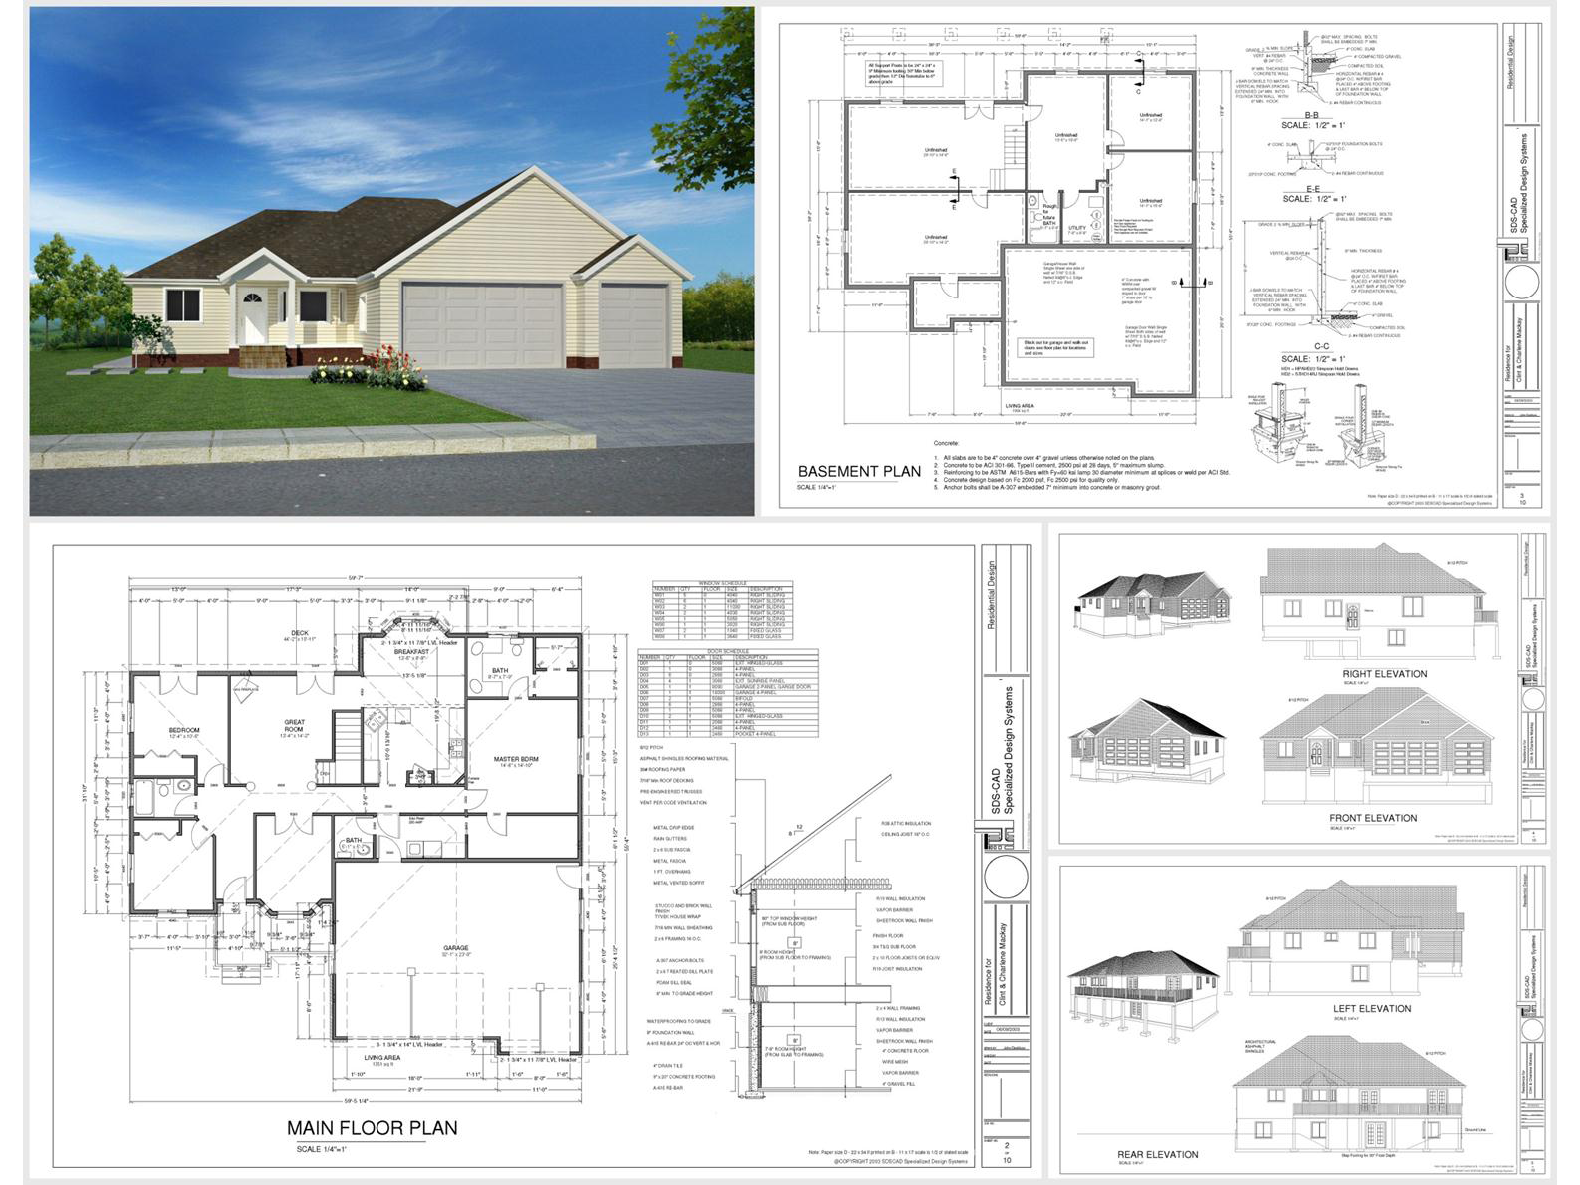 100 house plans catalog page 009 9 plans for House plan catalogs free